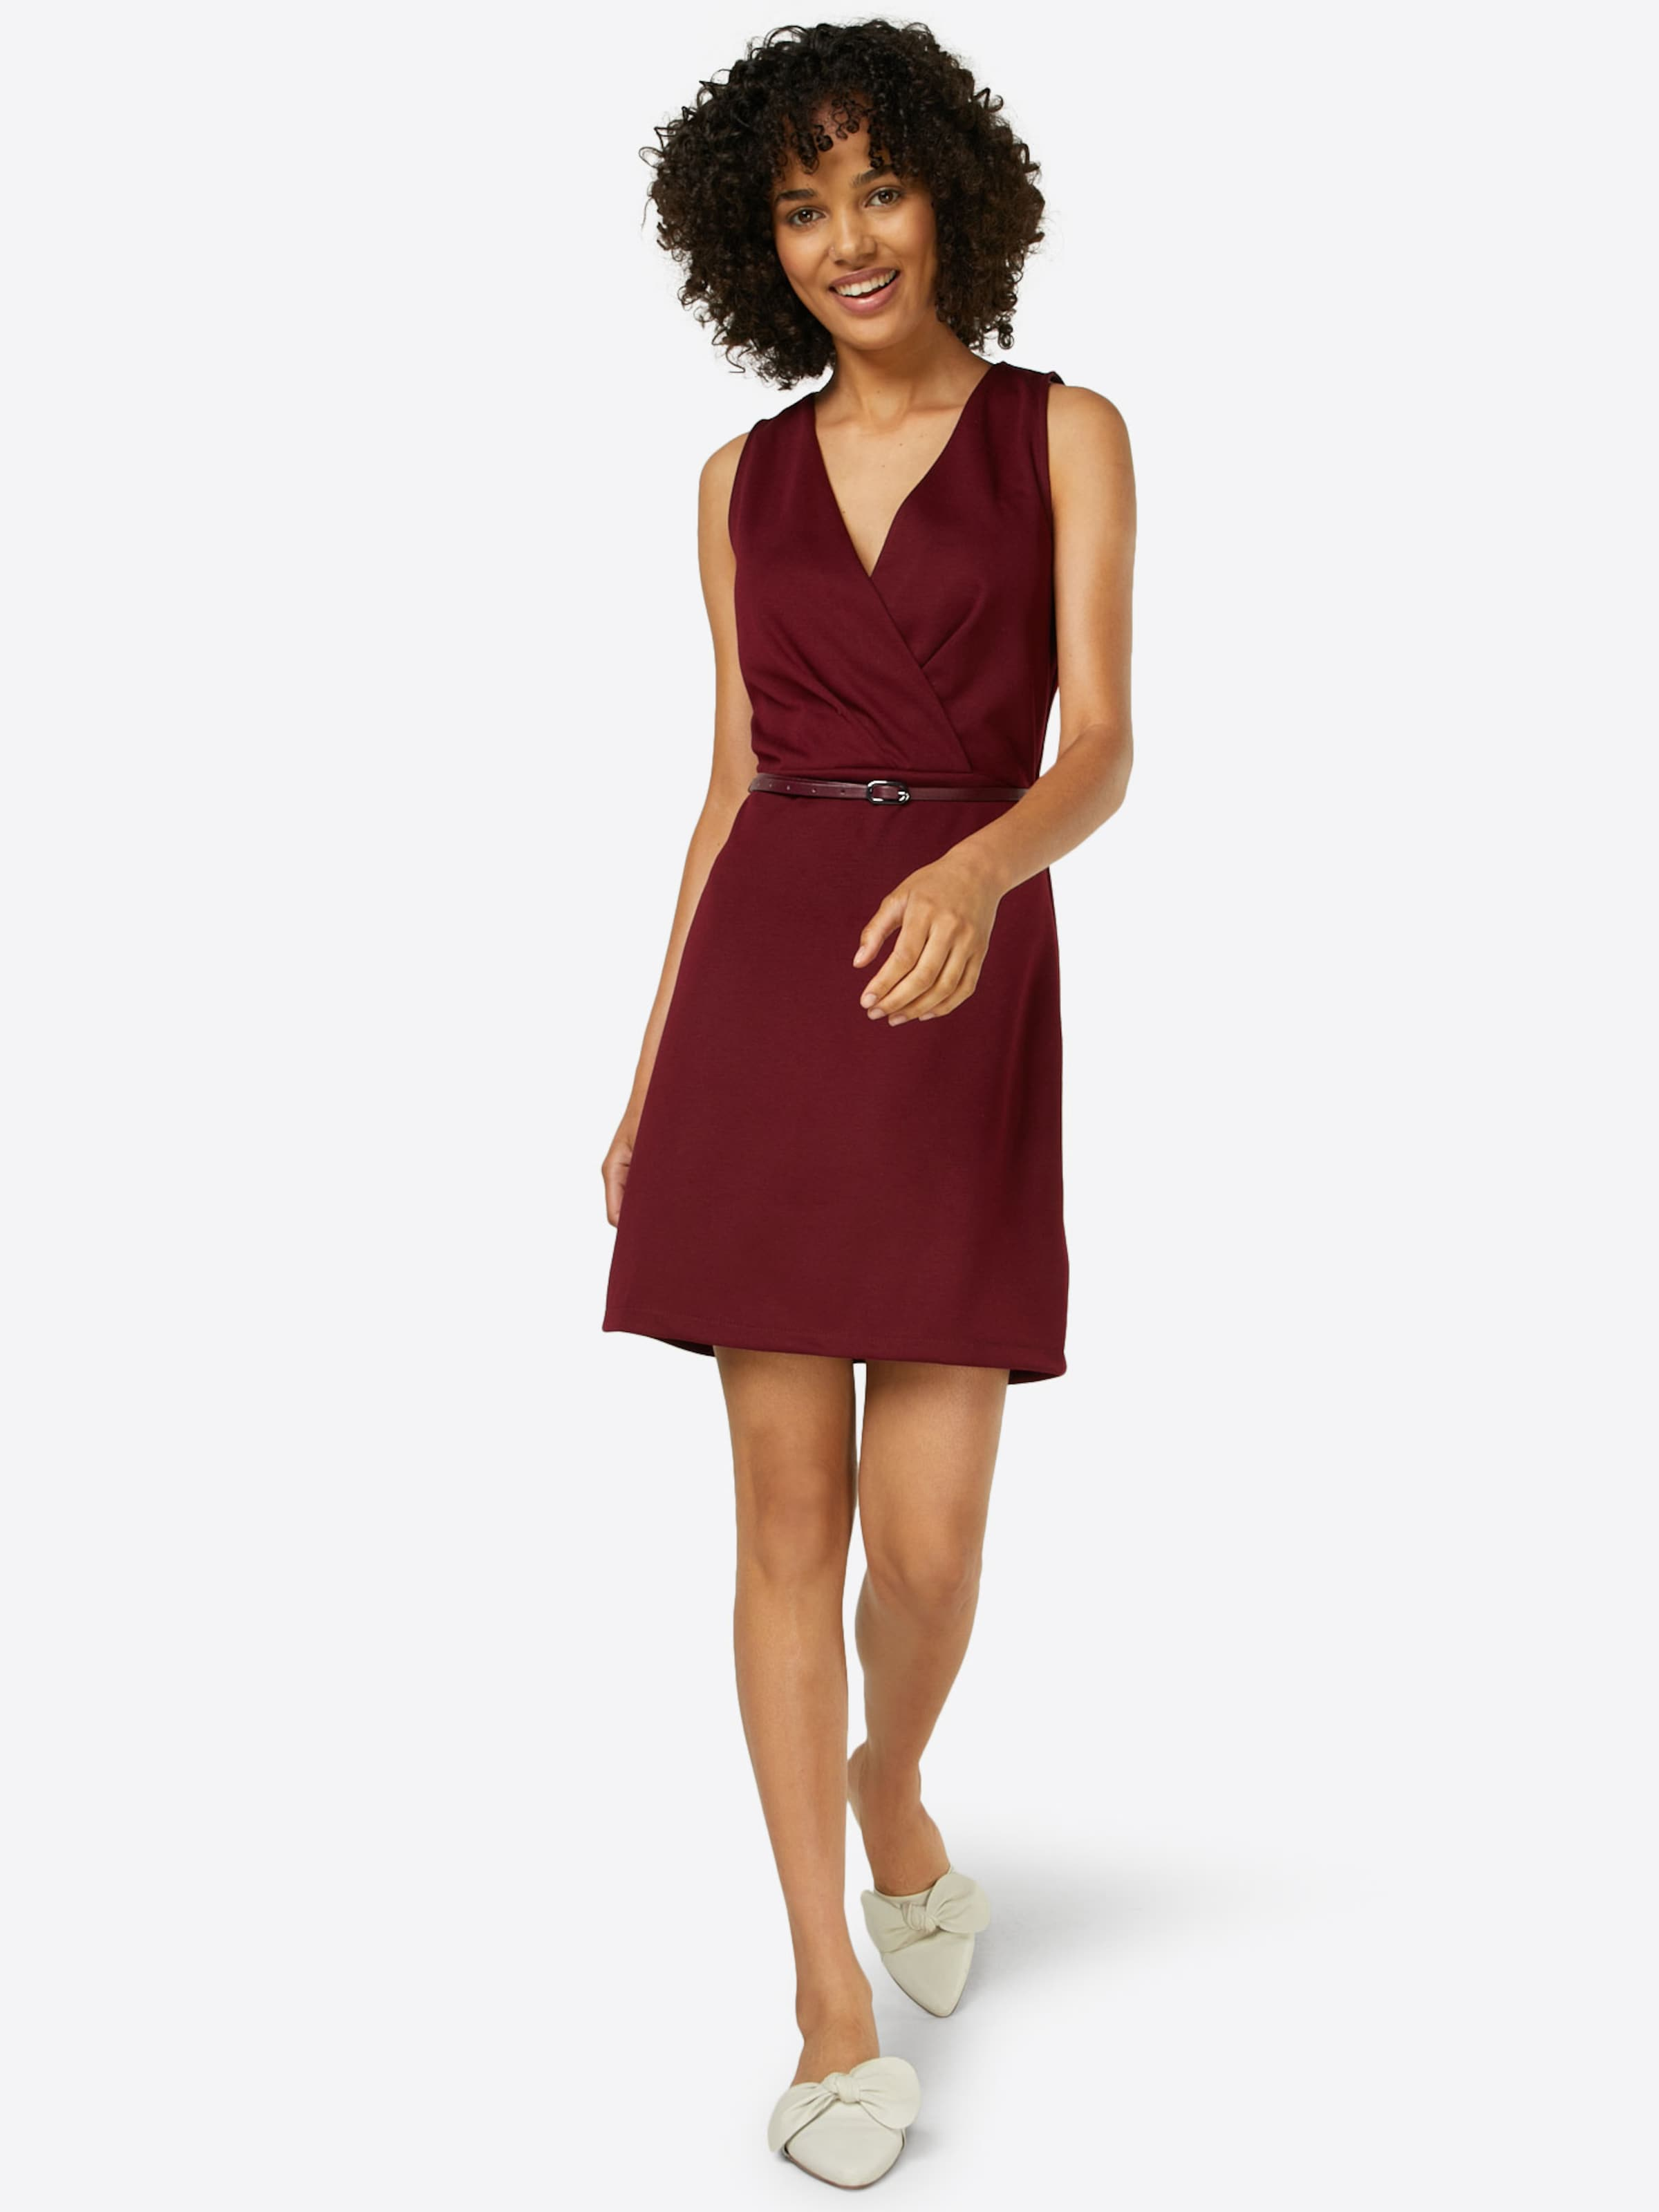 'ludmilla Jurk Bourgogne Bourgogne Jurk 'ludmilla Dress' 'ludmilla Jurk In Dress' In Dress' In IYb6gyvmf7